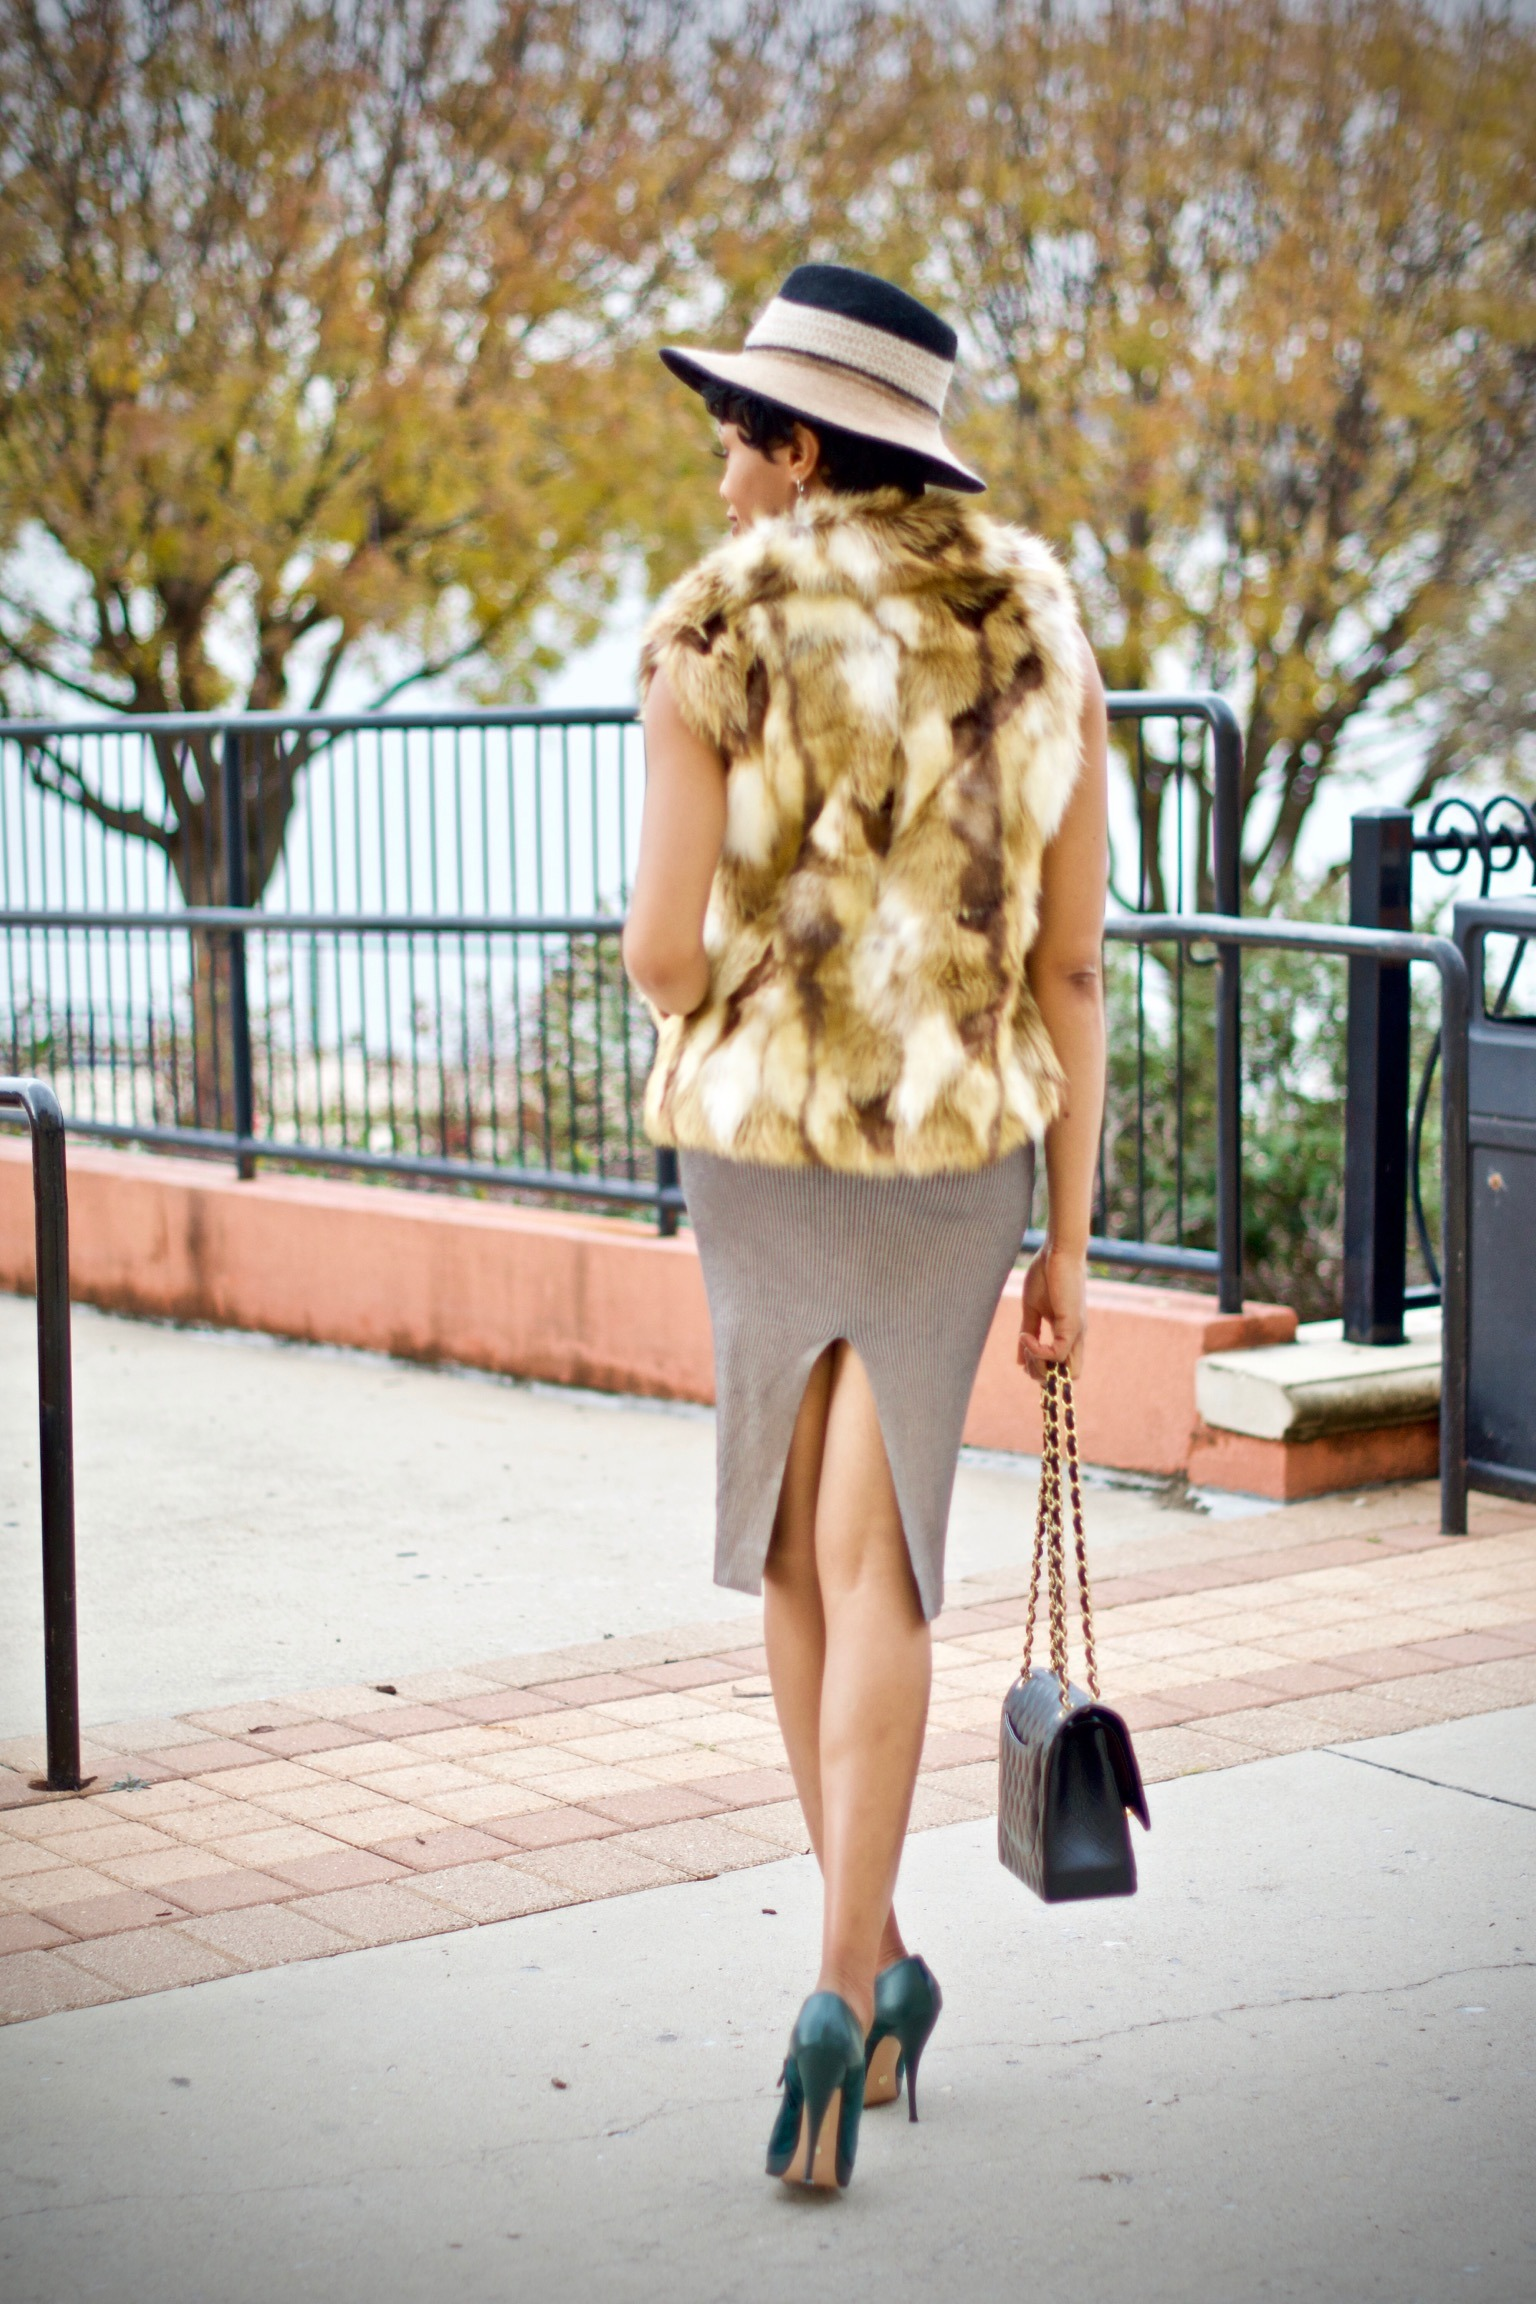 5 simple tips for styling faux fur vests Posted by Vivellefashion